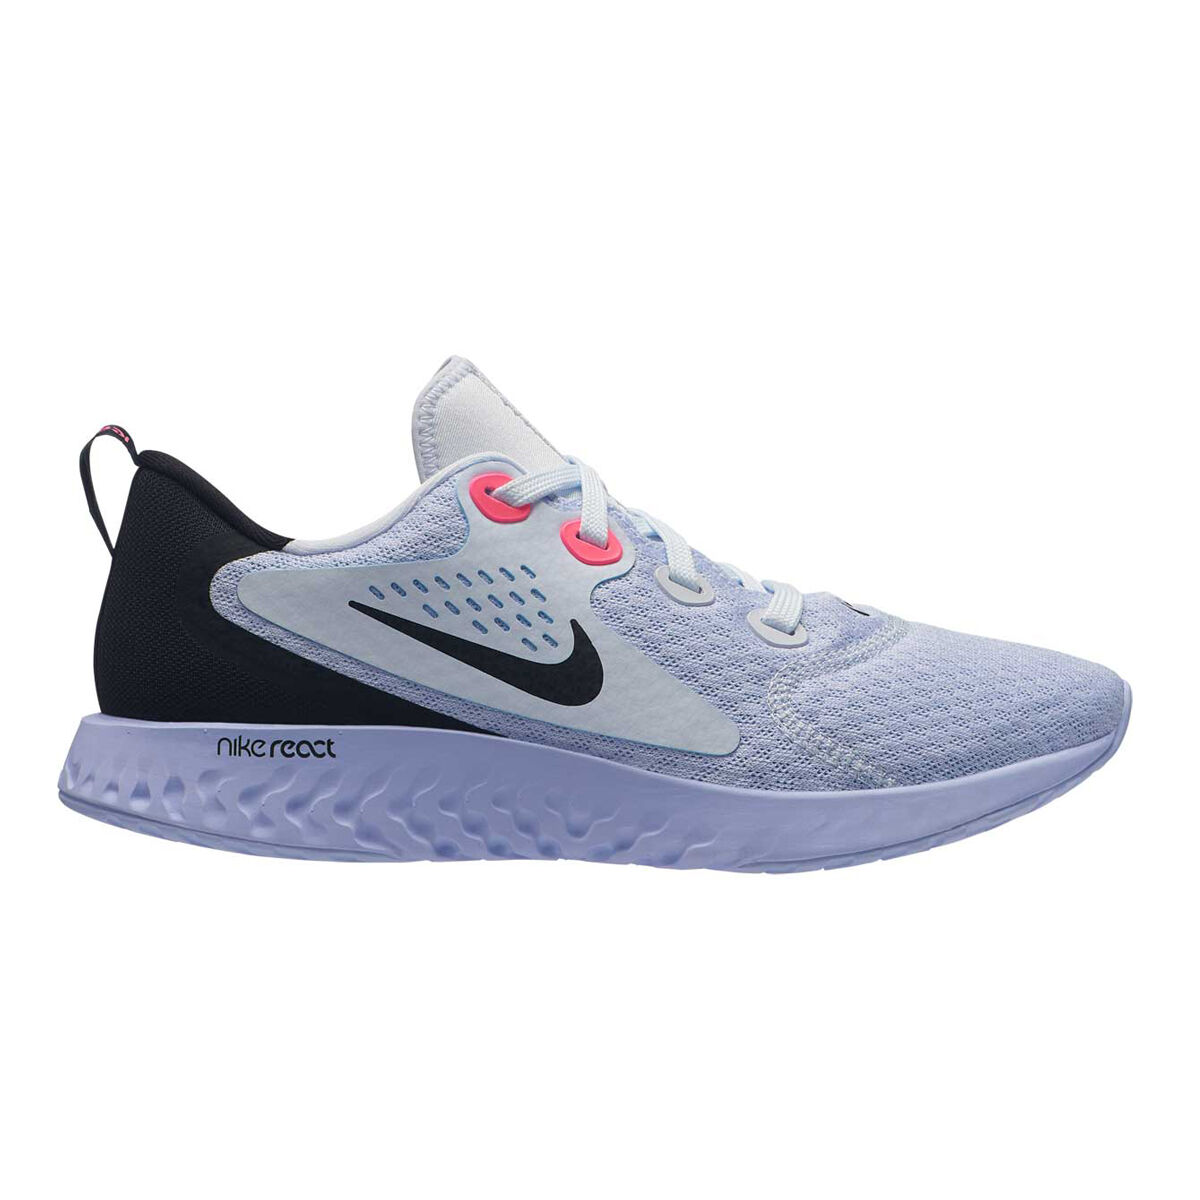 Nike Legend React Womens Running Shoes Grey Purple US 6